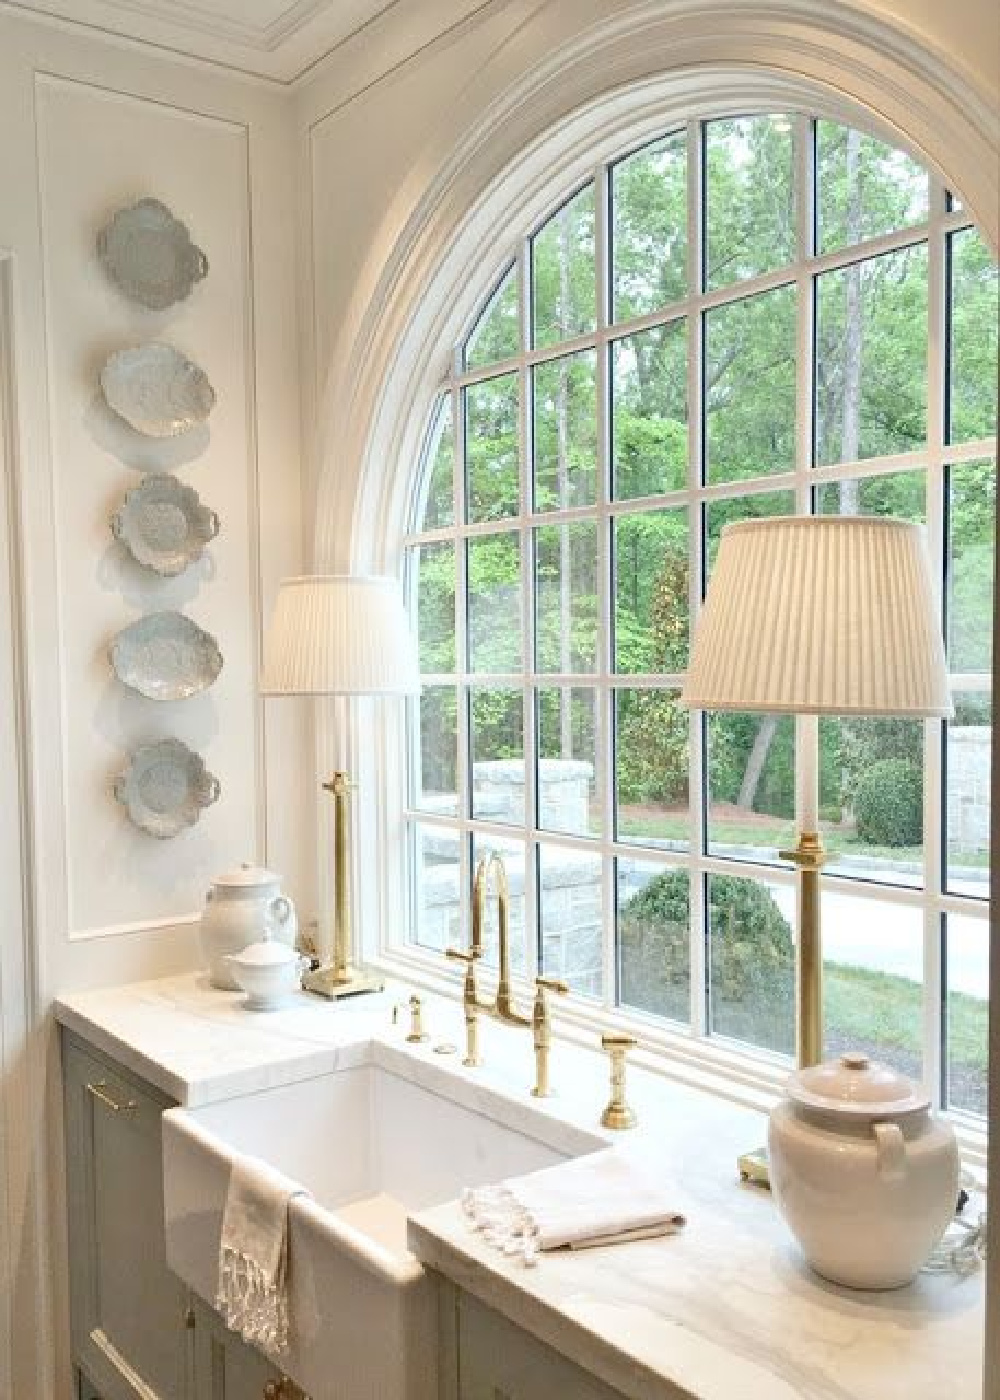 Elegant, refined, and masterfully designed, this kitchen with farm sink and arched window is but one moment in our tour of unforgettable interiors with European inspired charm. #farmsink #FrenchCountry #lightblue